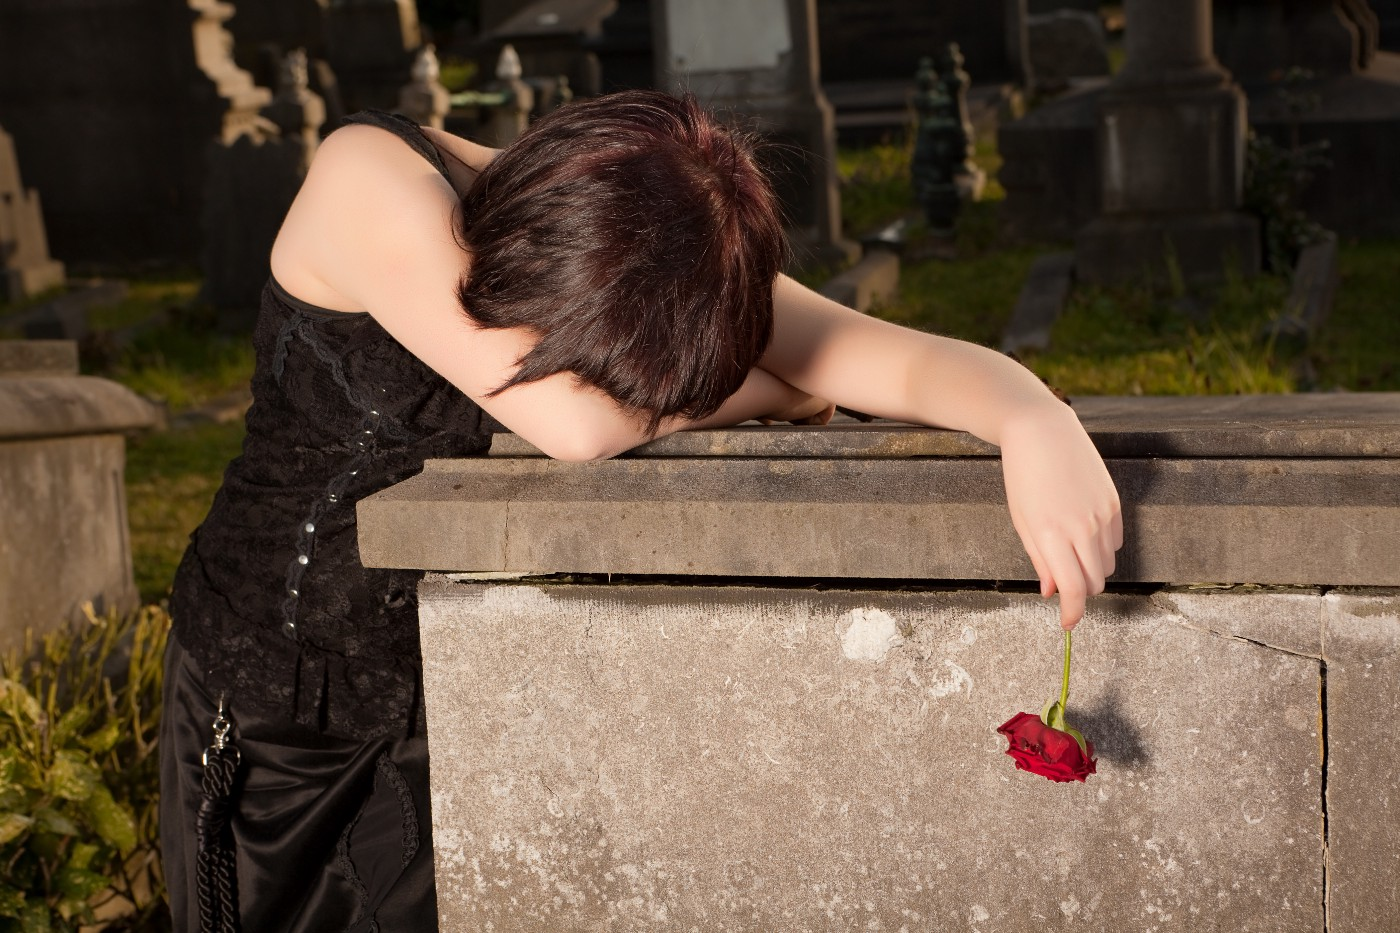 Goth woman with short hair holding a single red rose, sobbing on a grave marker